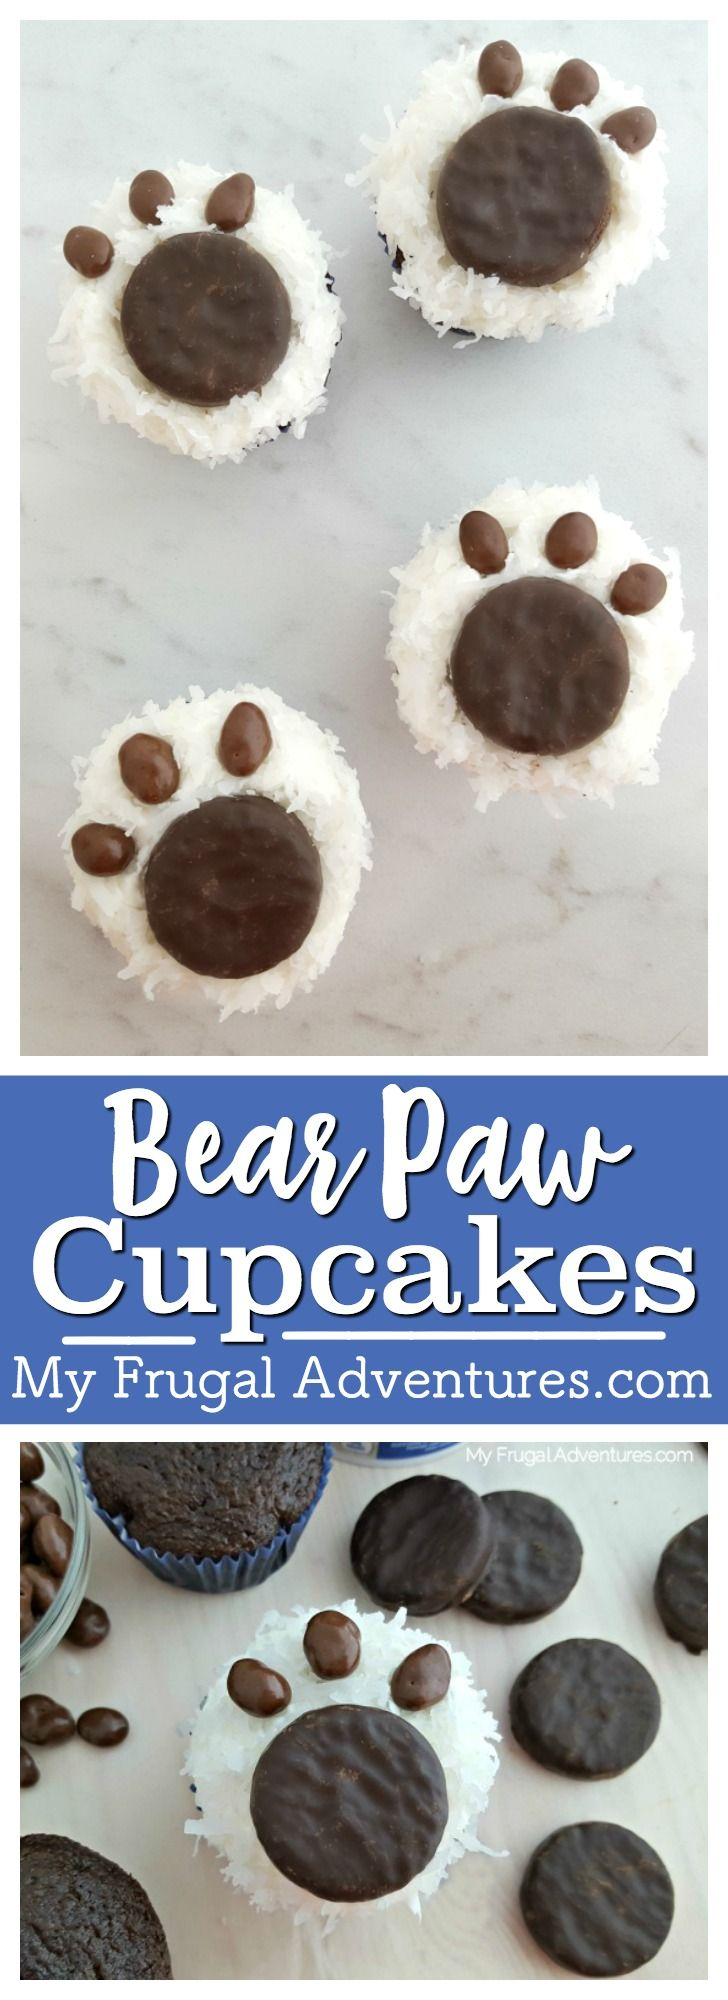 Simple and delicious bear paw cupcakes.  These are adorable and the kids will love them!